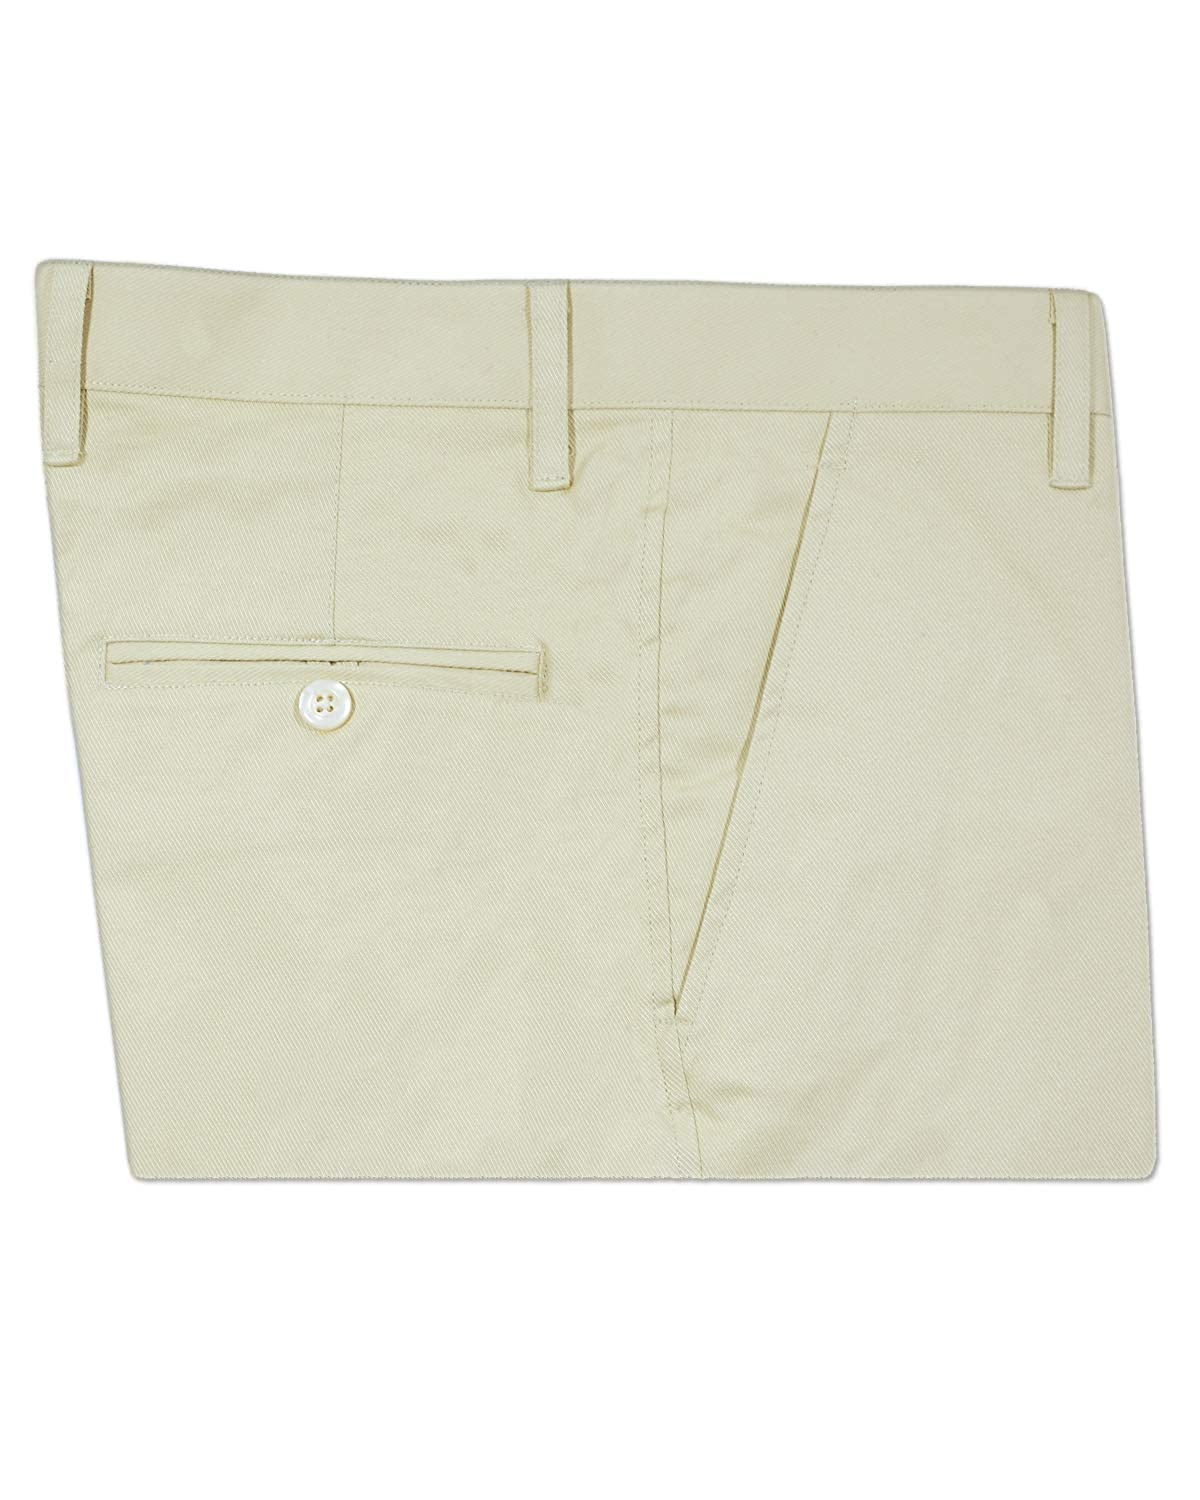 French crown Oat Cream Regular fit Cotton Trouser